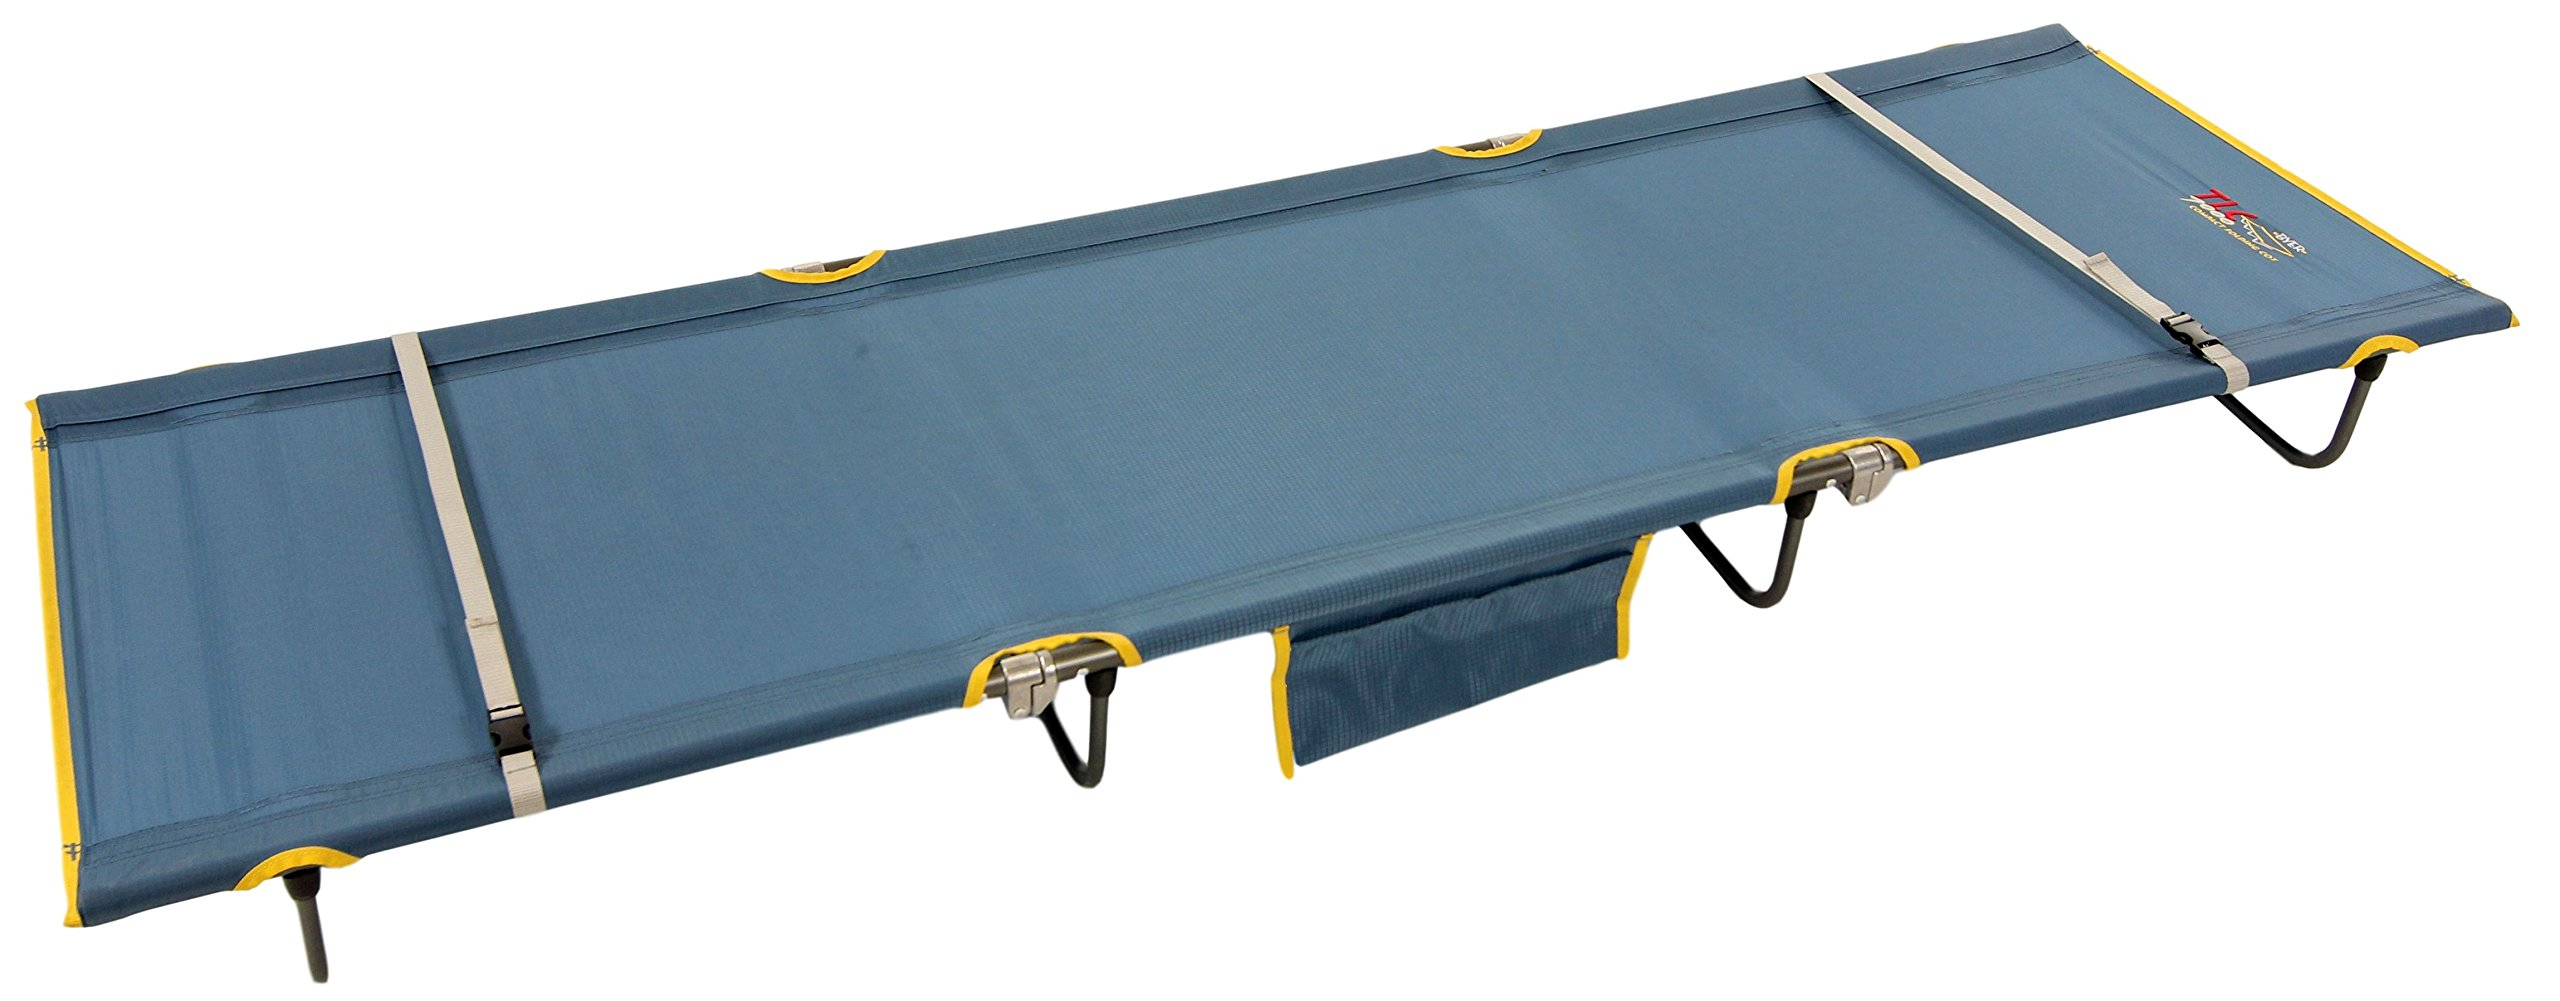 TLC 7000, Portable and Lightweight Cot by Byer of Maine